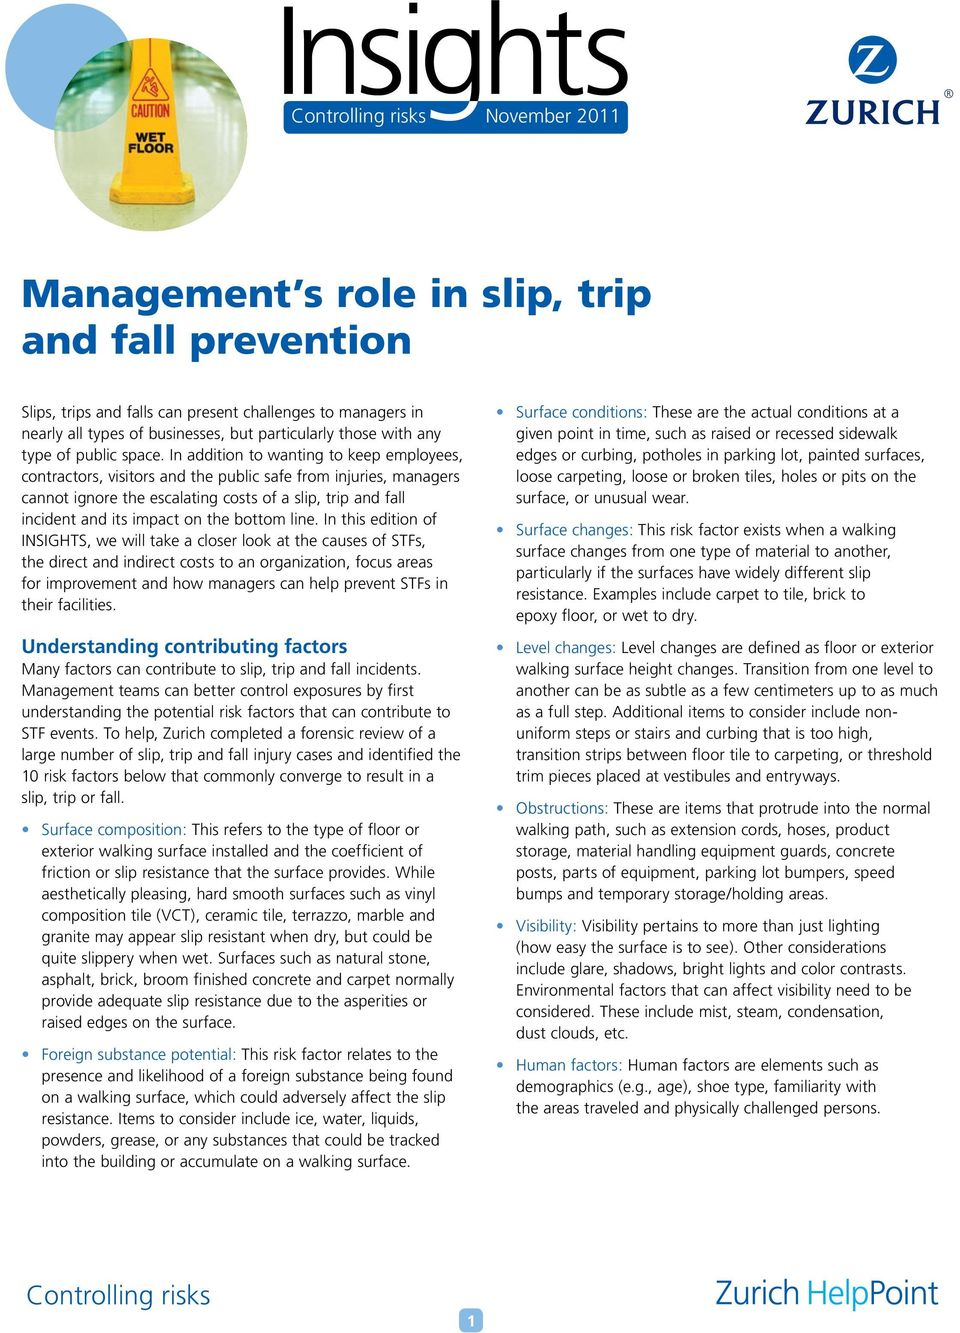 In addition to wanting to keep employees, contractors, visitors and the public safe from injuries, managers cannot ignore the escalating costs of a slip, trip and fall incident and its impact on the